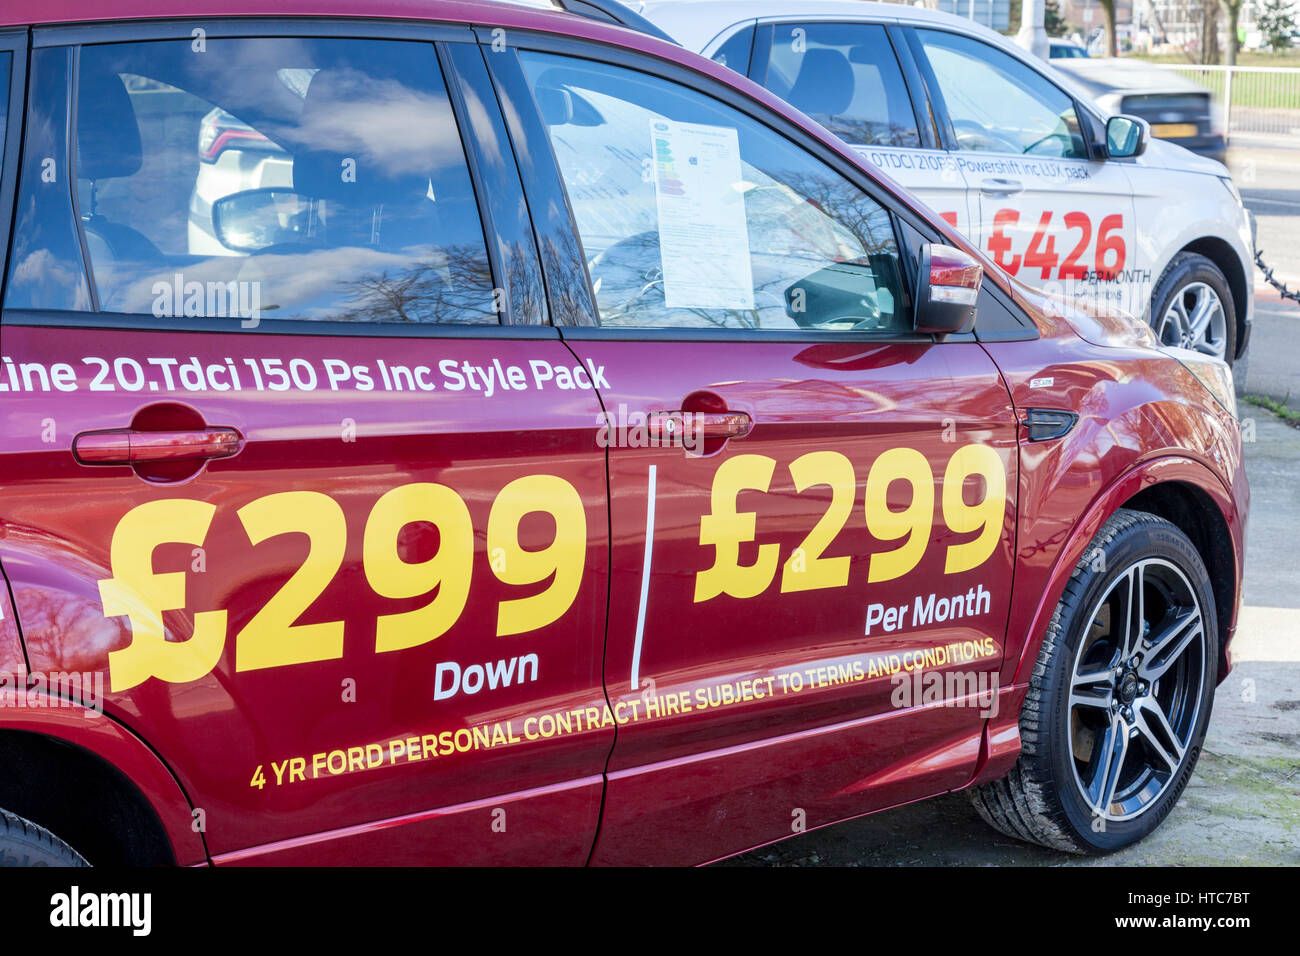 Car Finance The Cost Of Monthly Payments Displayed On The Side Of